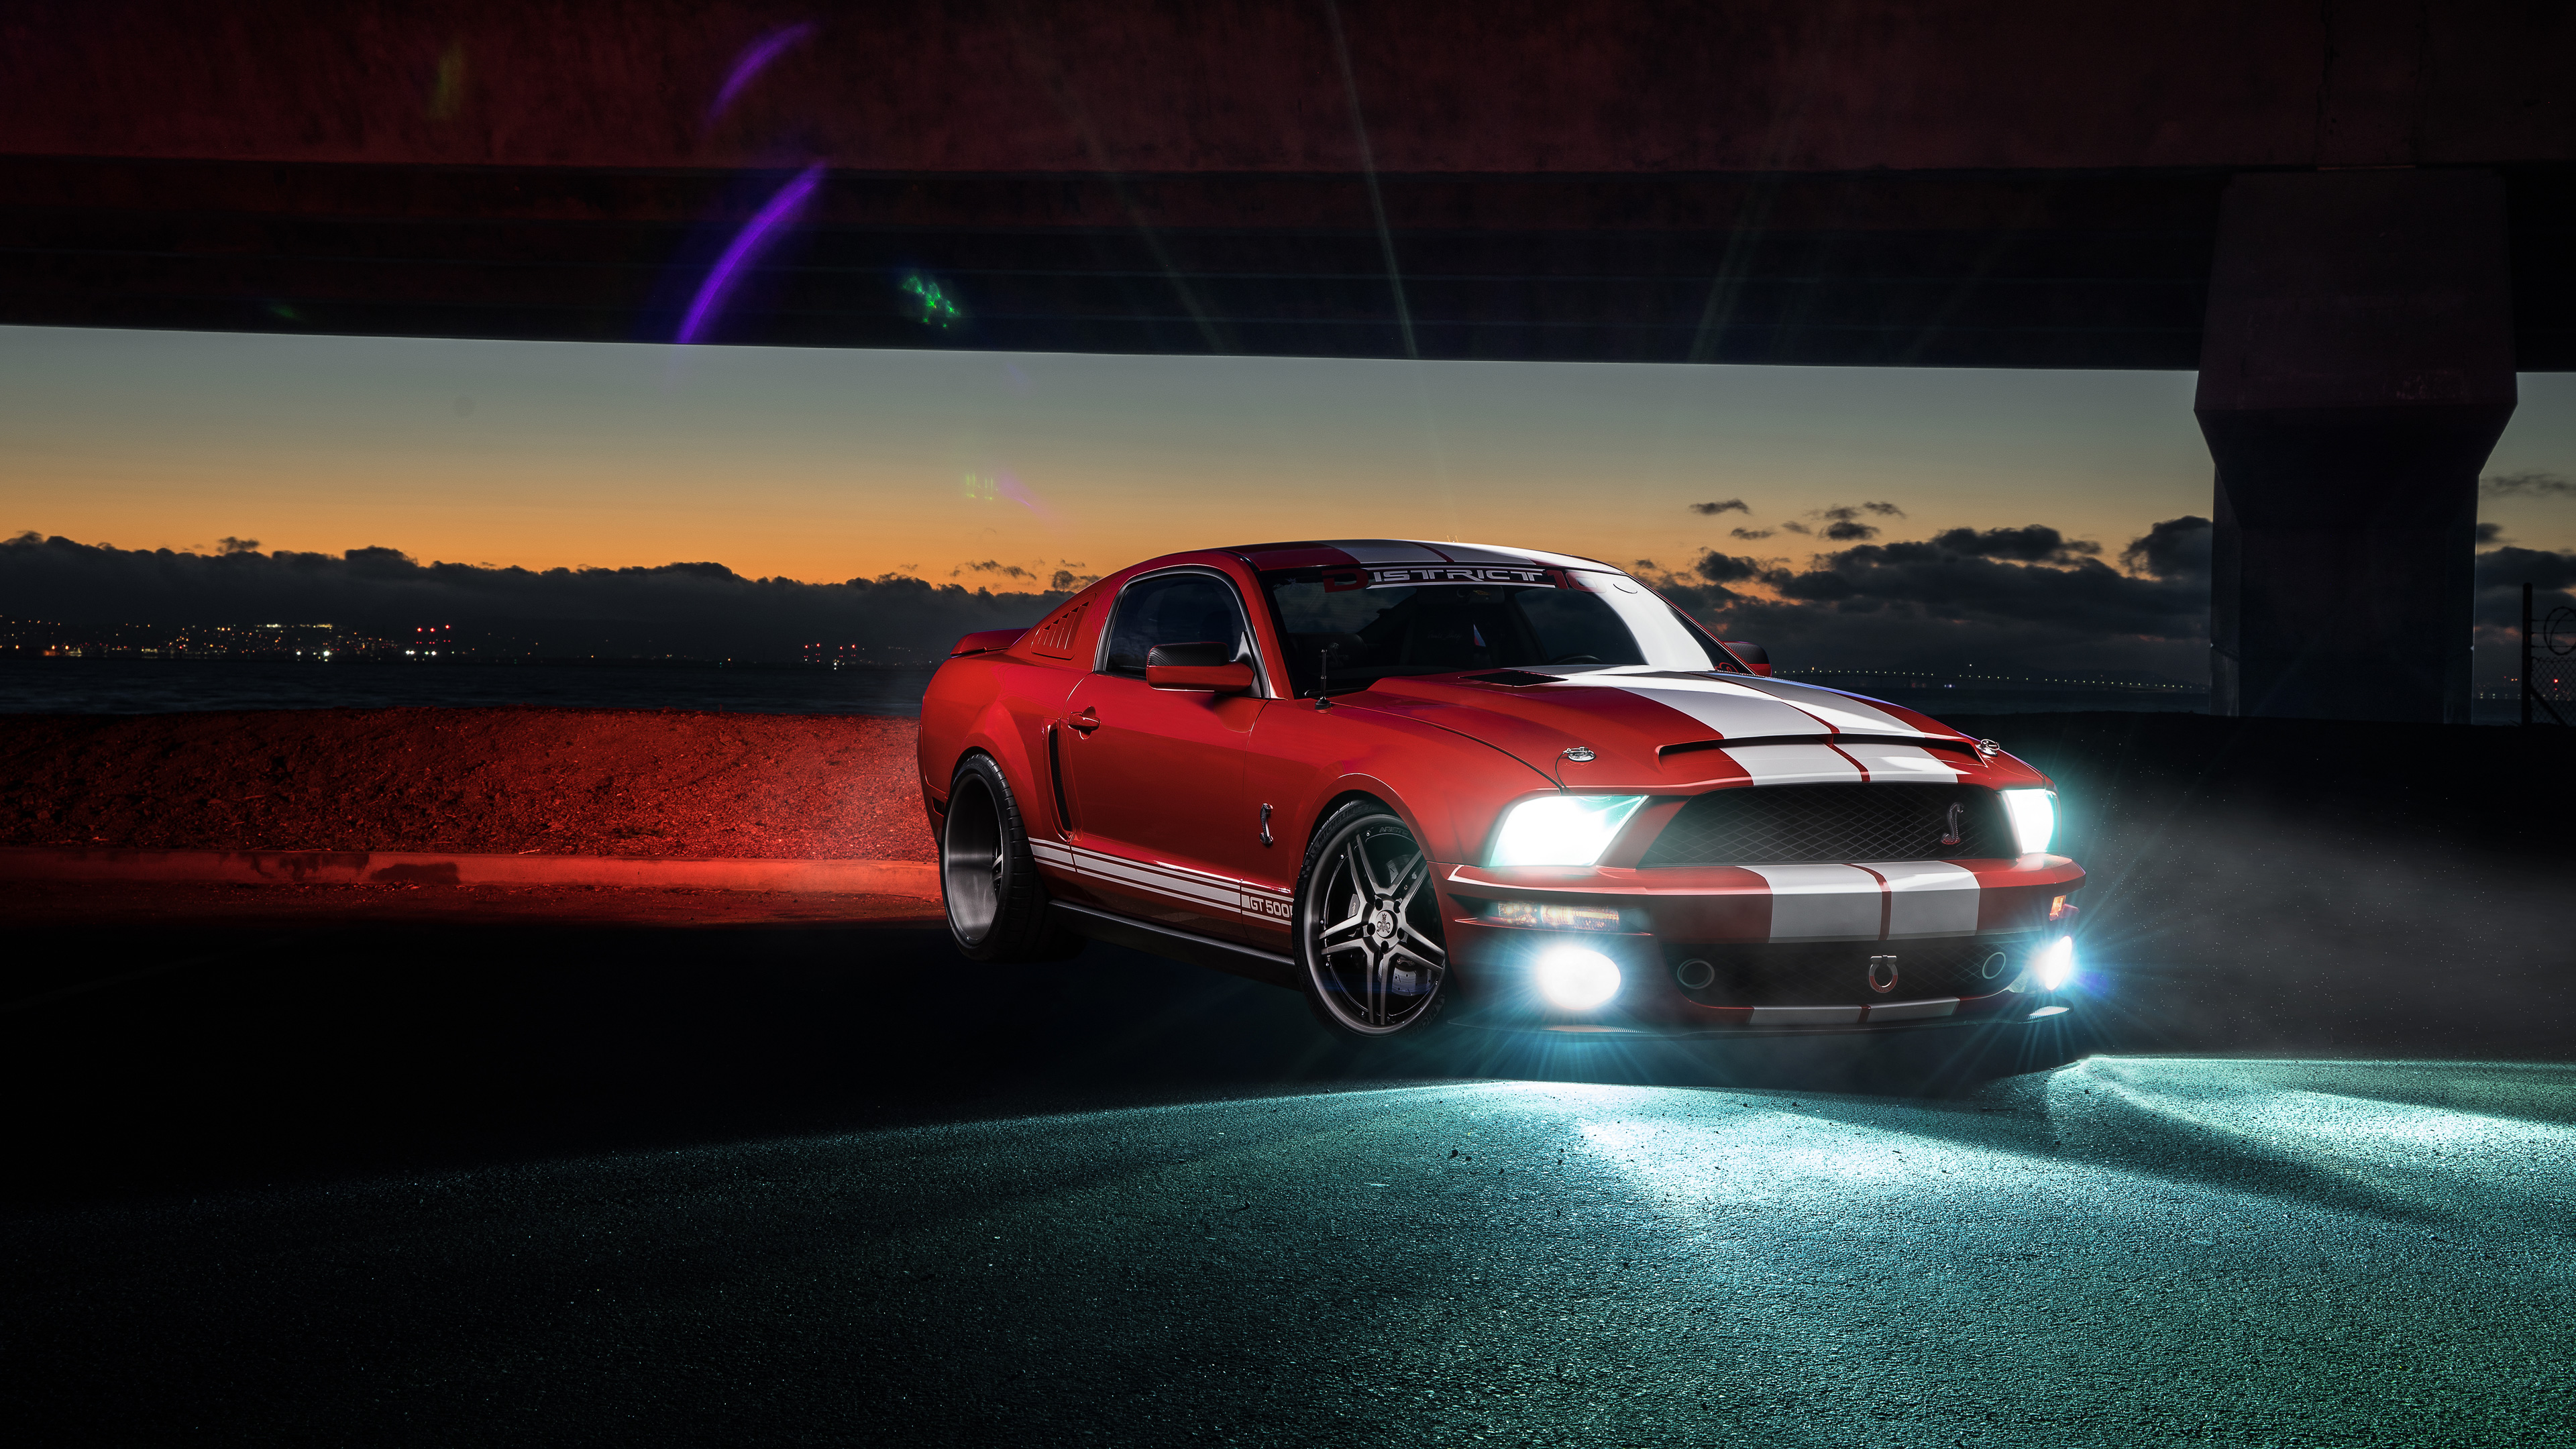 3840x2160 - Ford Mustang GT500 Wallpapers 9